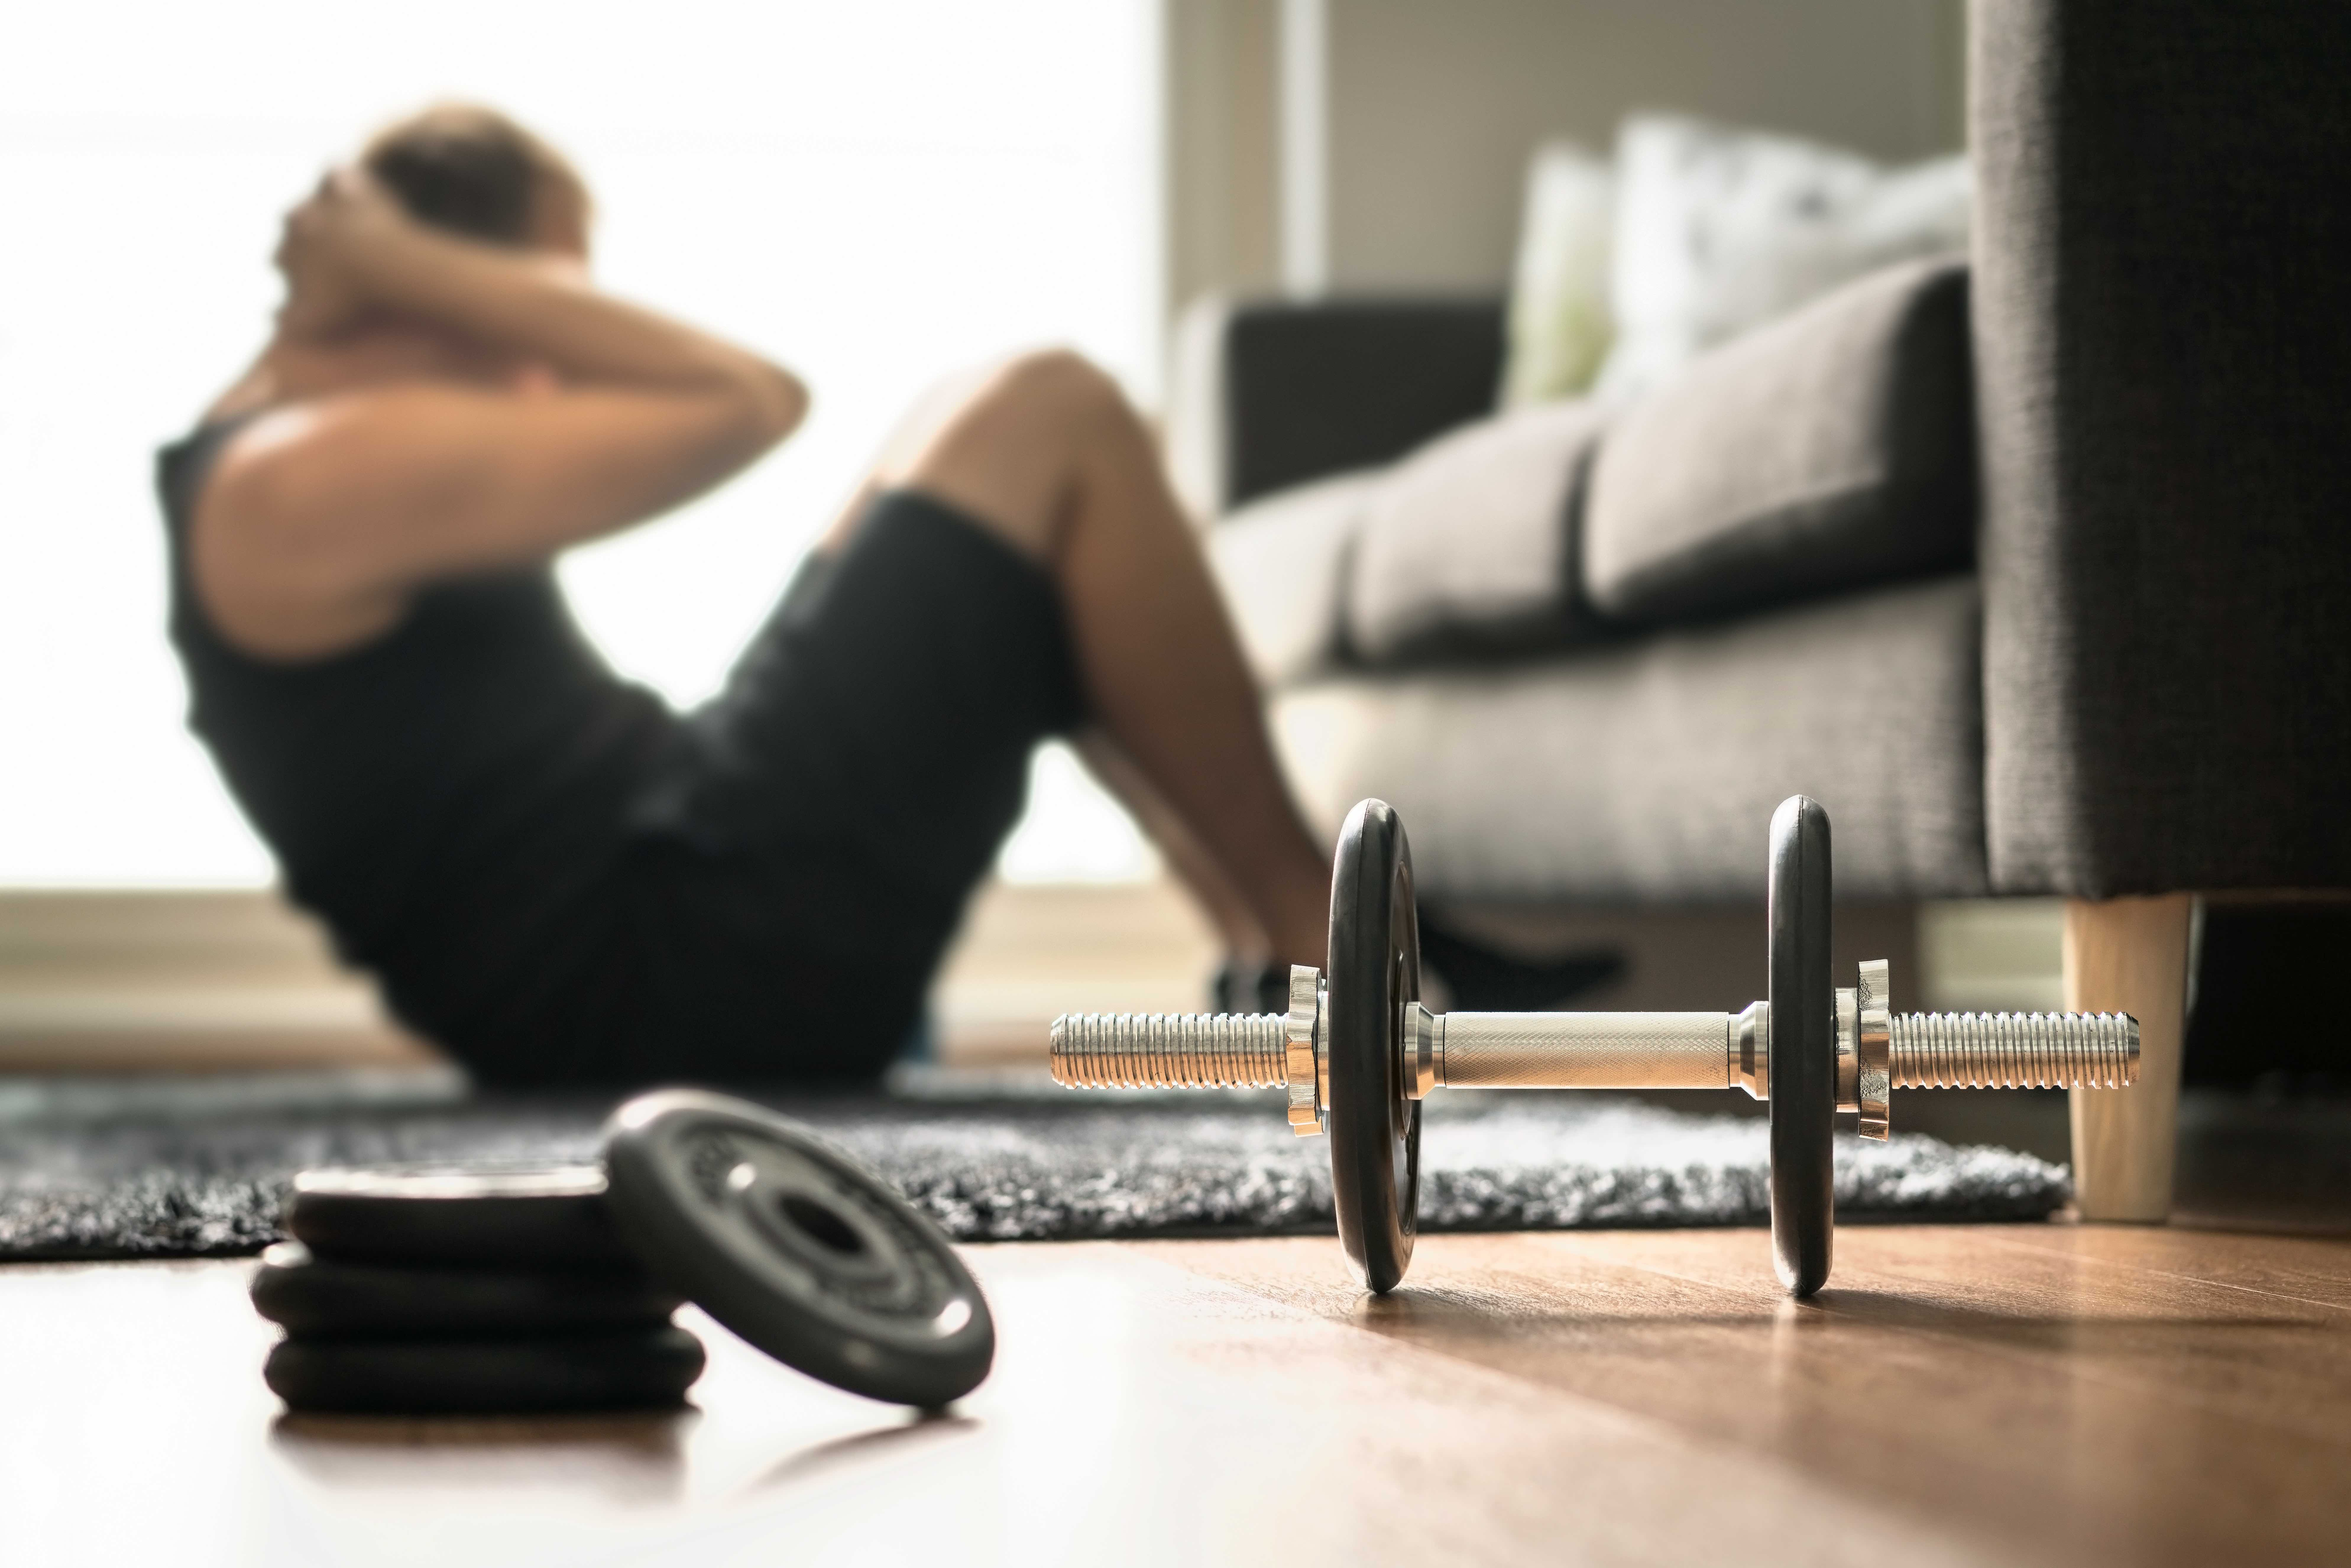 https://livehealthy.ae/wp-content/uploads/2020/03/home-workouts.jpg